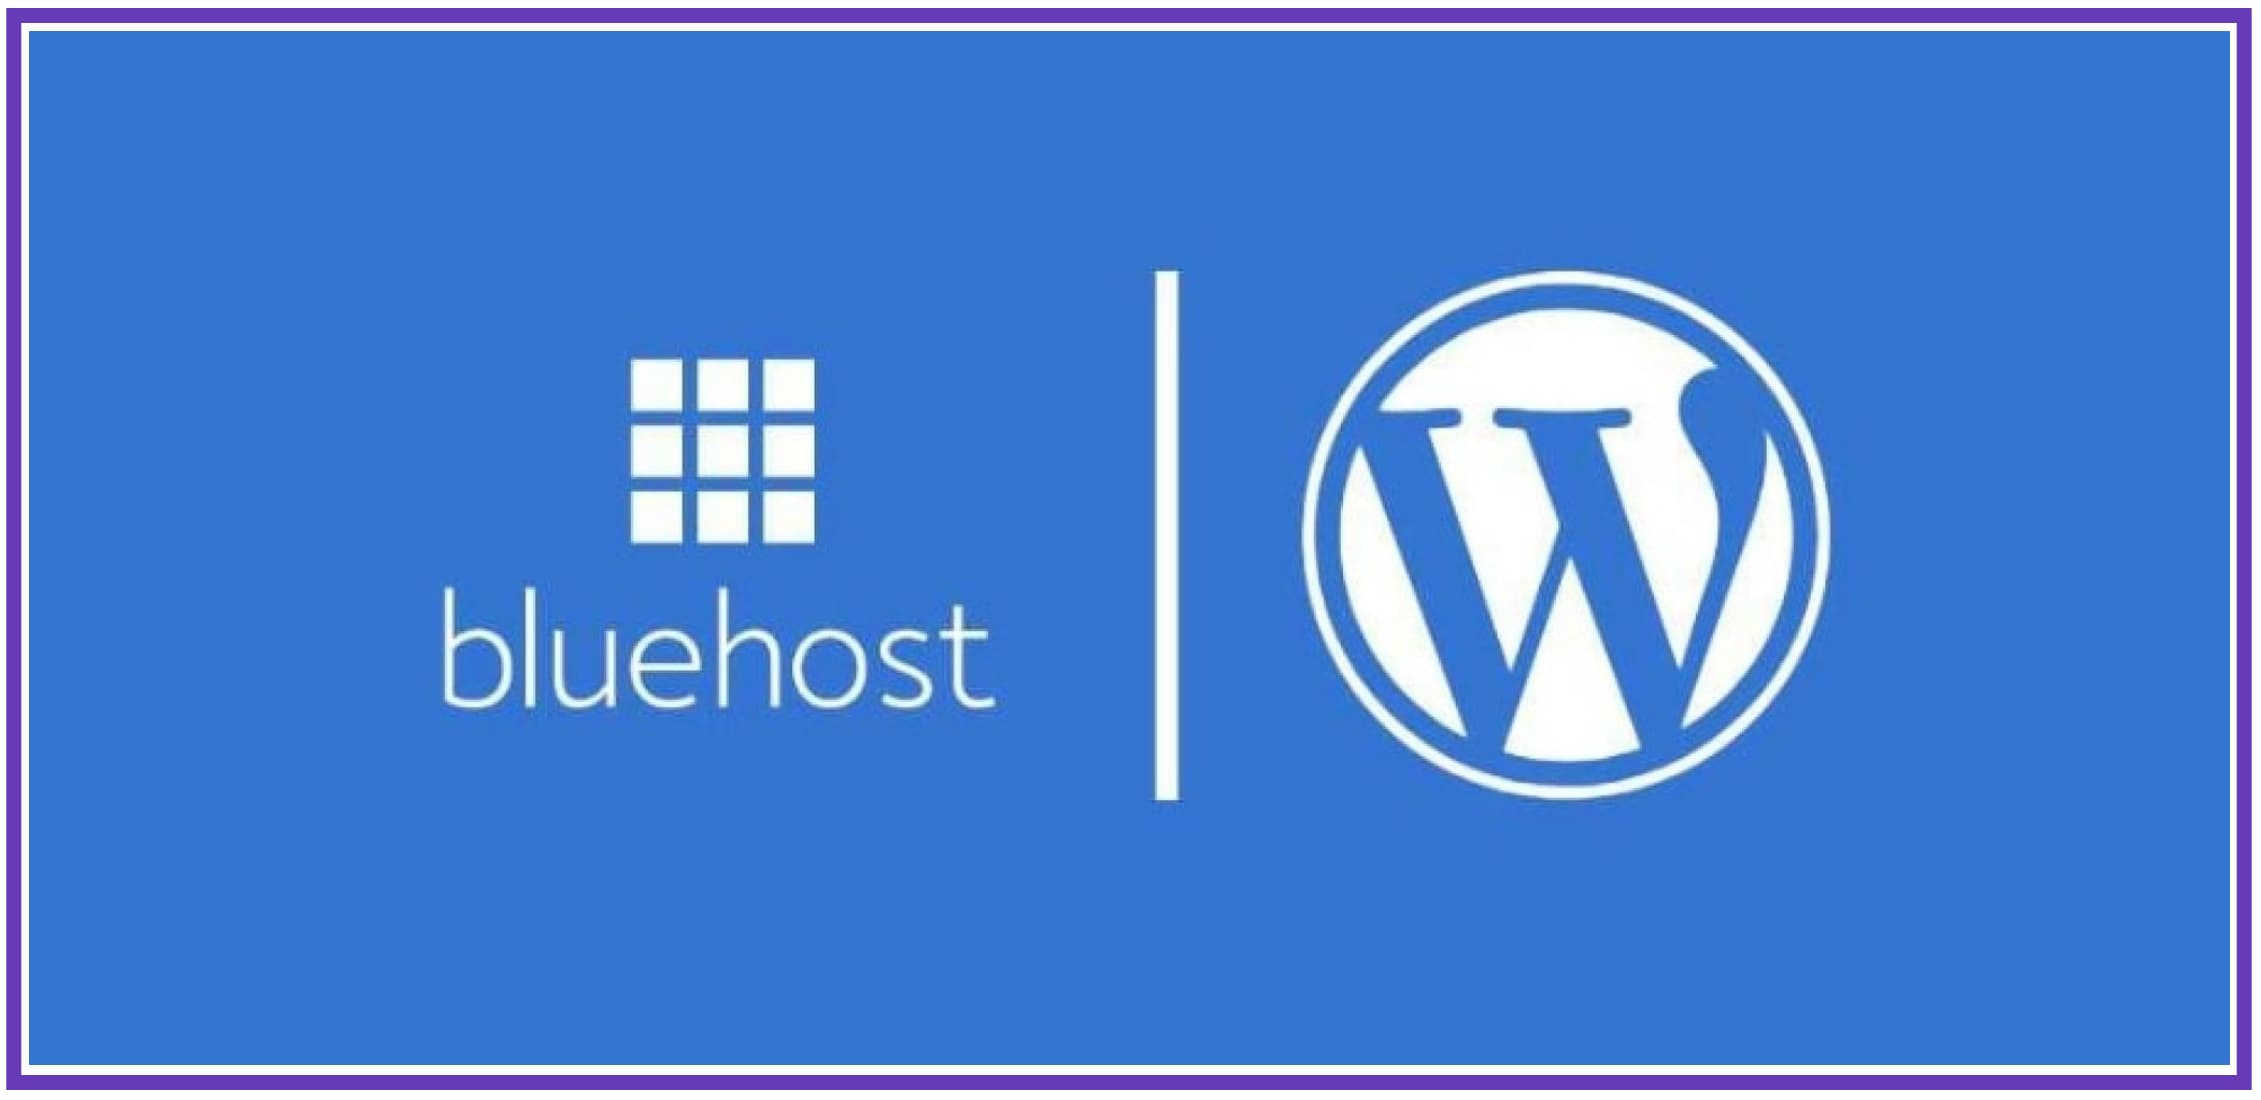 Bluehost Review 2021: Recommended Hosting For WordPress Since 2005 - bluehost review 1